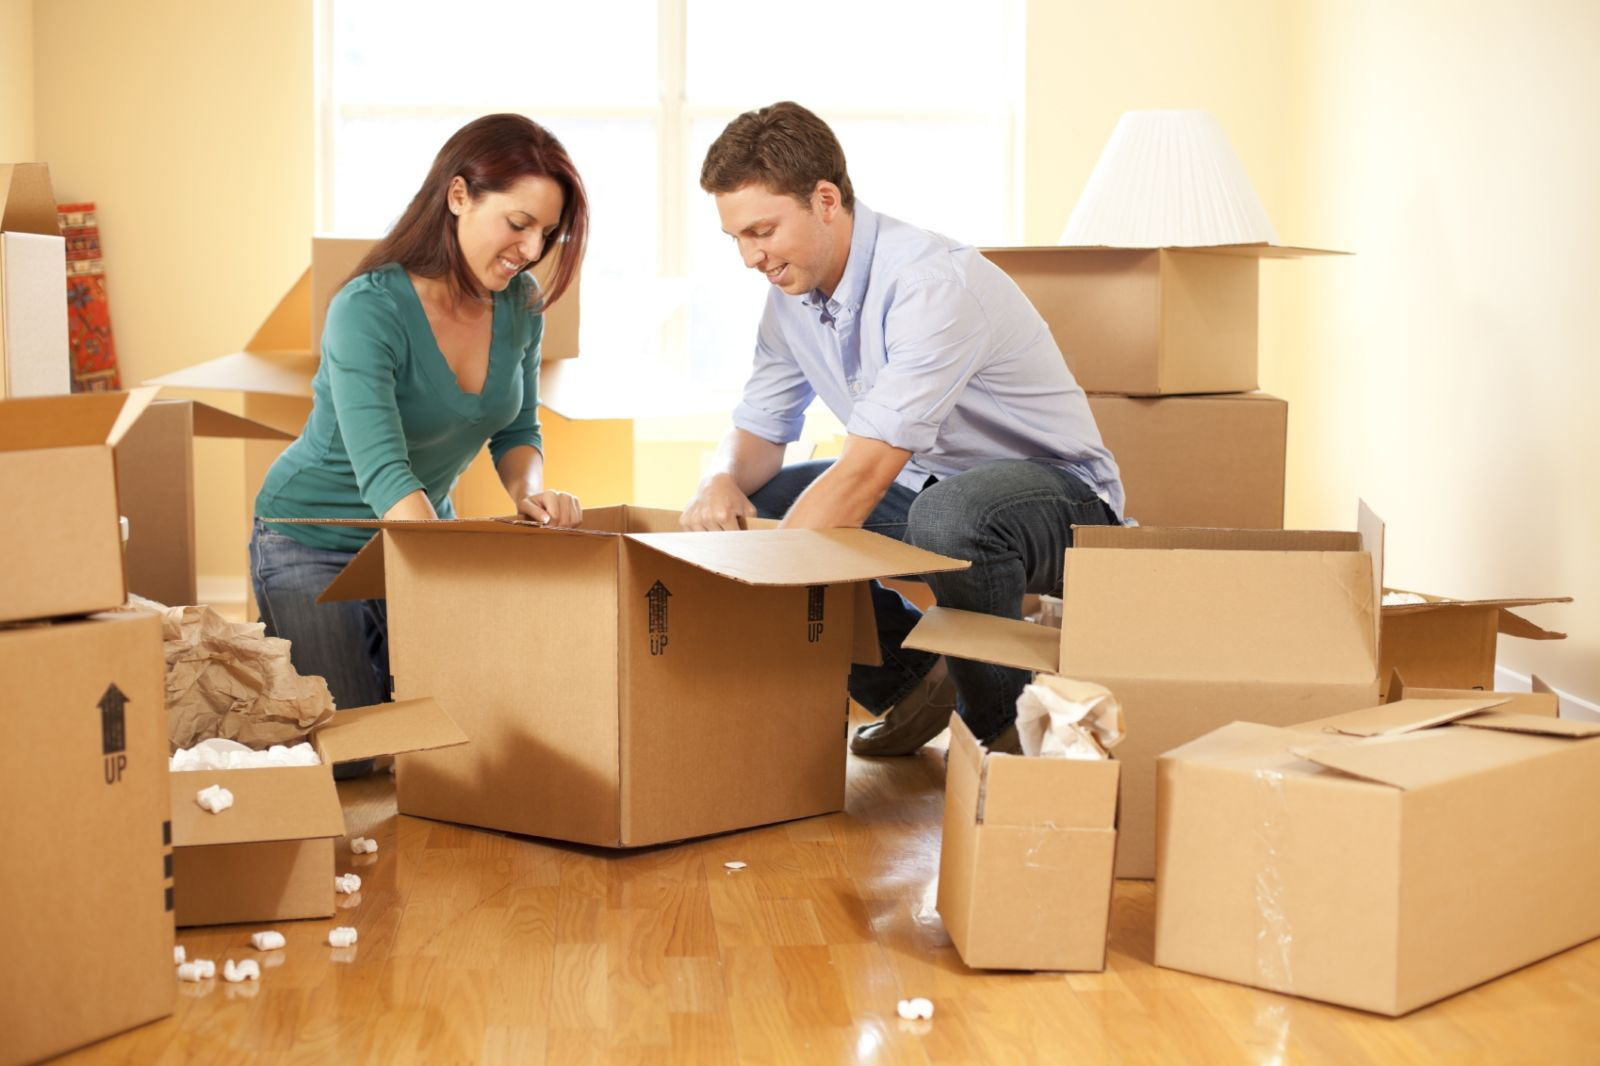 Tips on How to Avoid Common Packing Mistakes While Moving